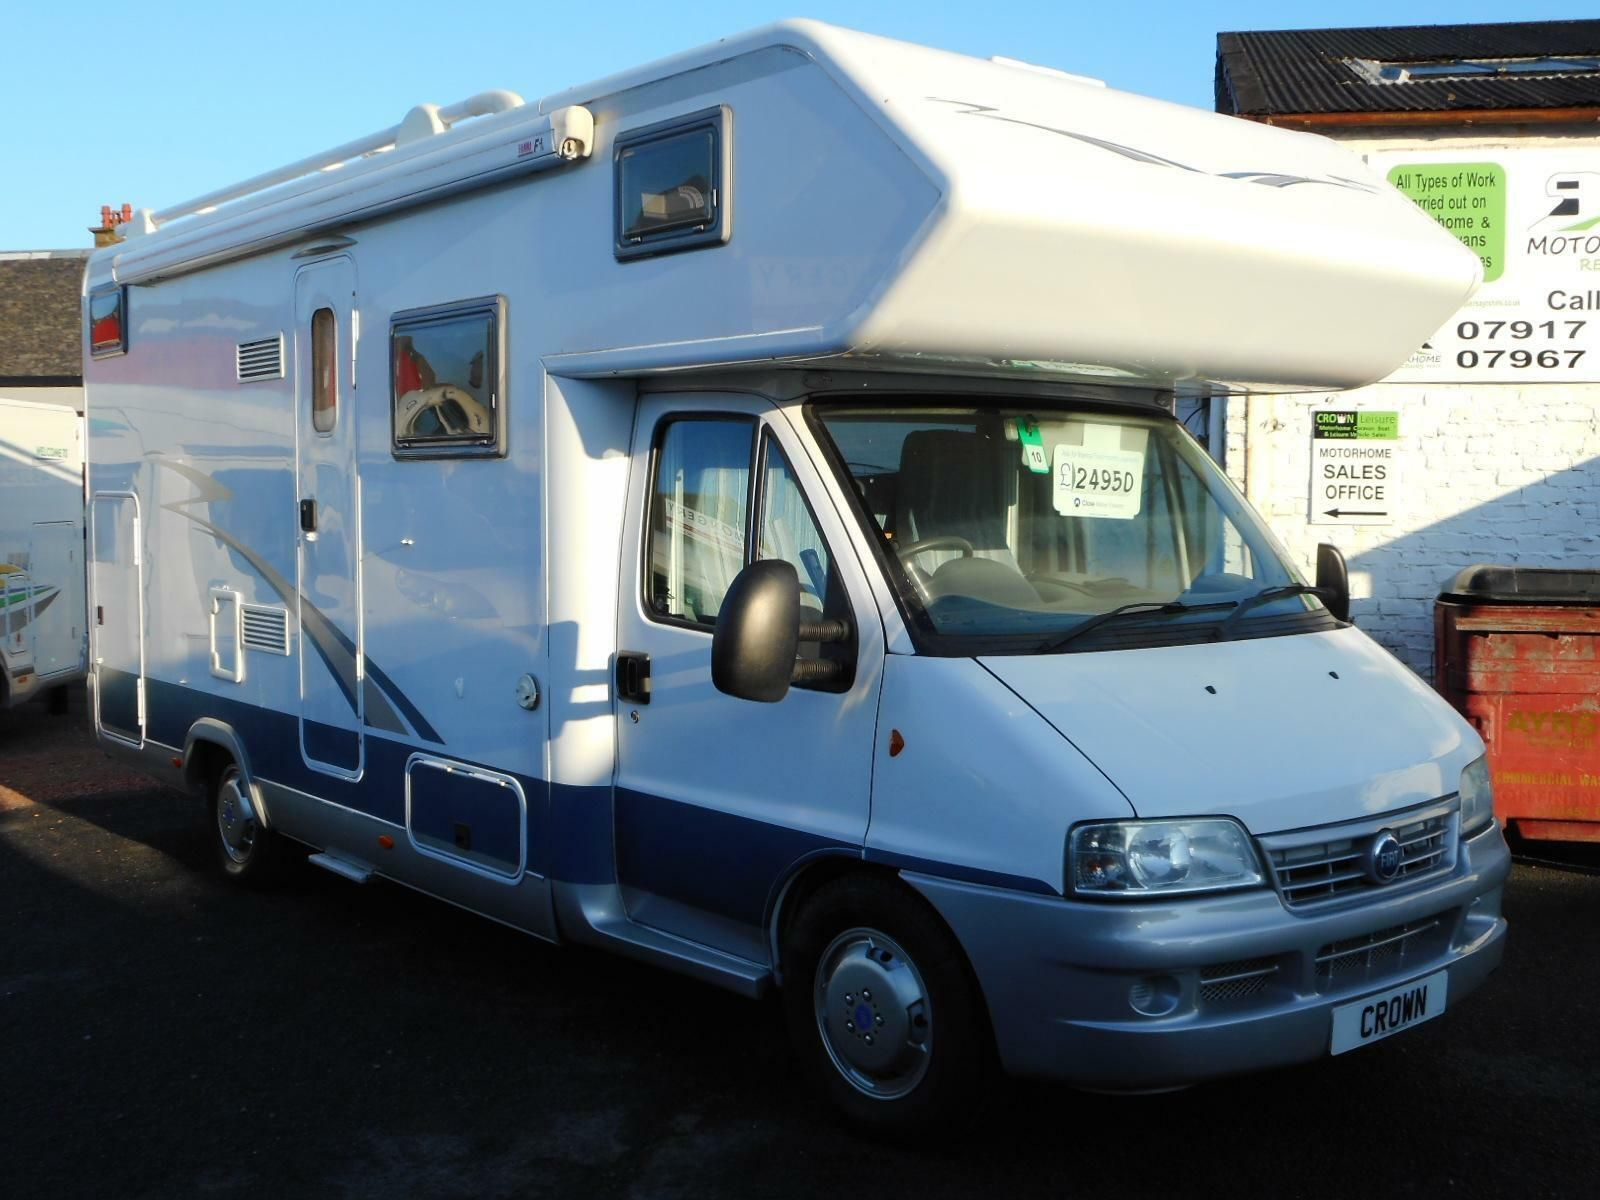 Details about 2005 FIAT DUCATO HOBBY 670 4 BERTH MOTORHOME